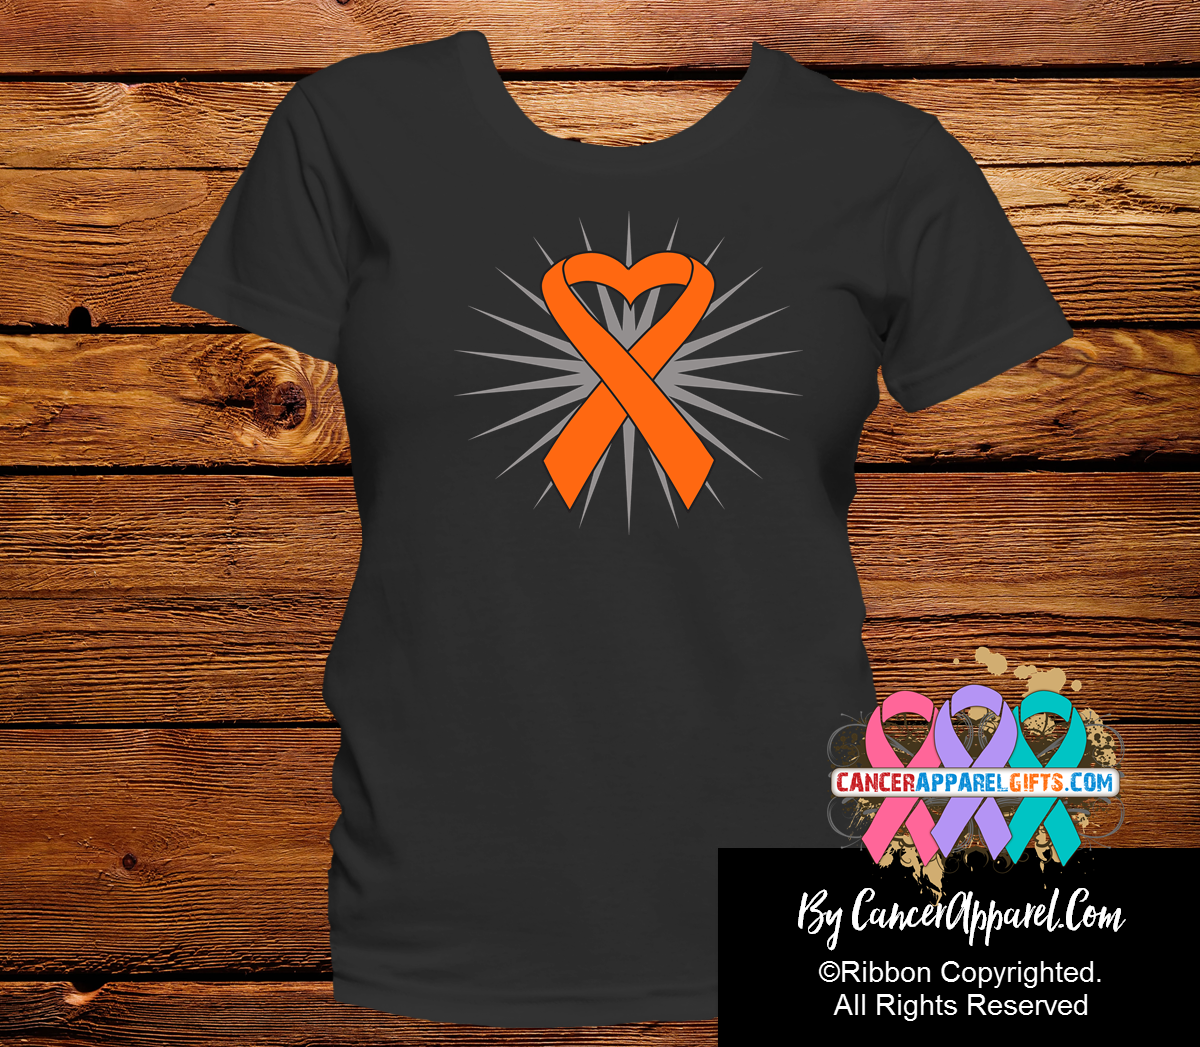 Leukemia Awareness Heart Ribbon Shirts - Cancer Apparel and Gifts